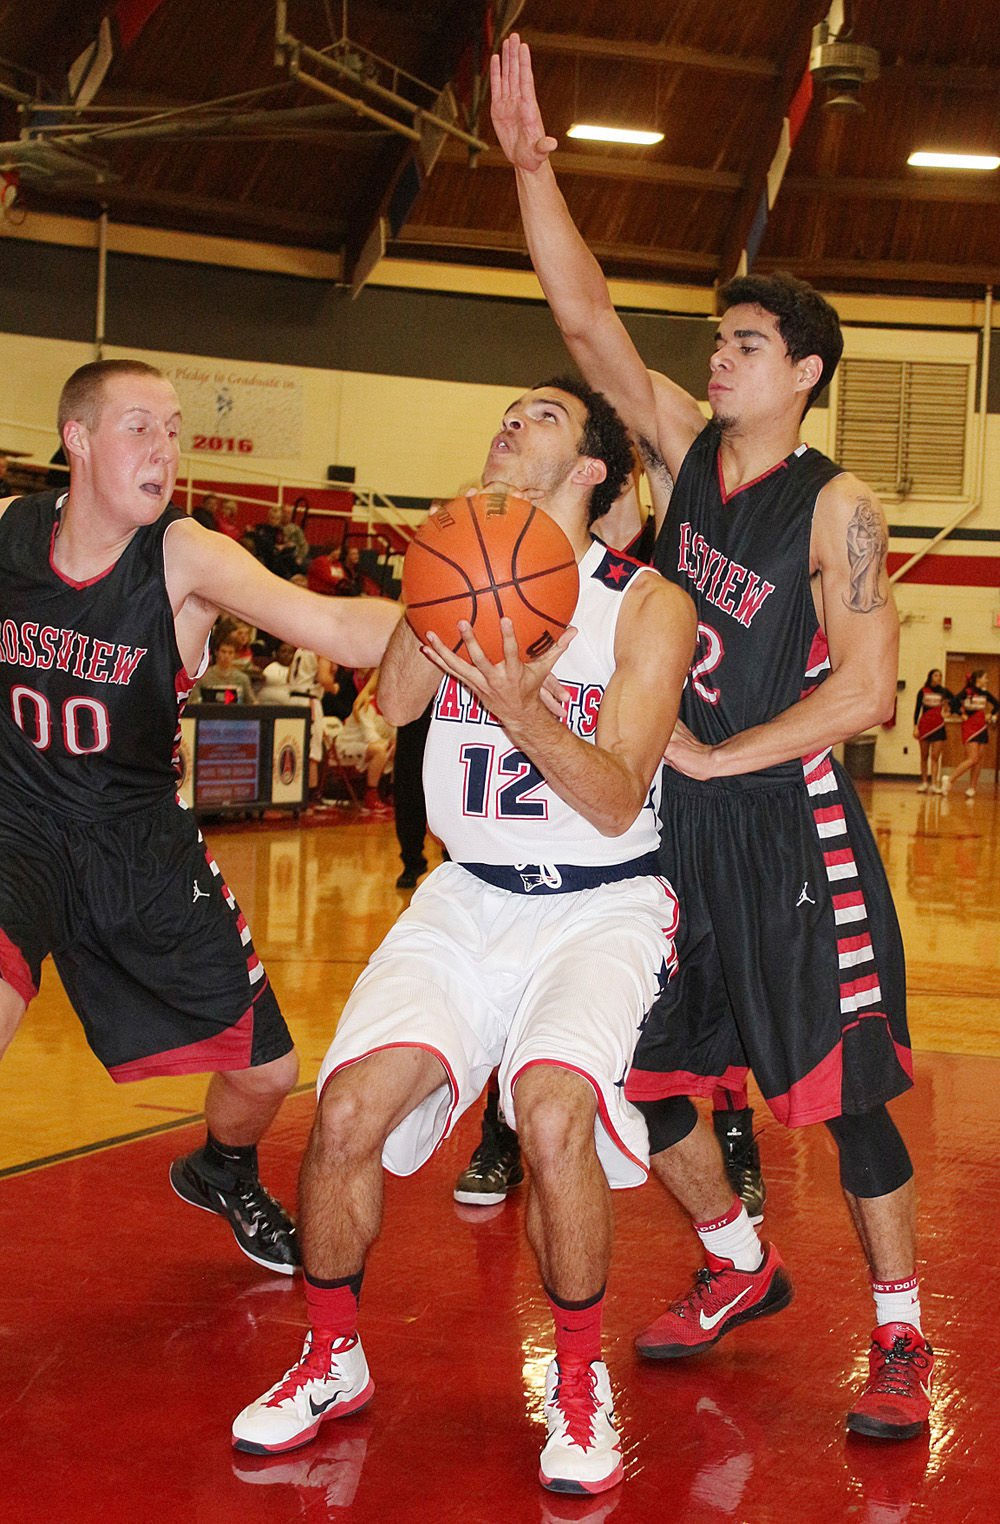 Paris tn close losses taking toll on pats local sports parispi henry county high schools jared adkisson sciox Choice Image